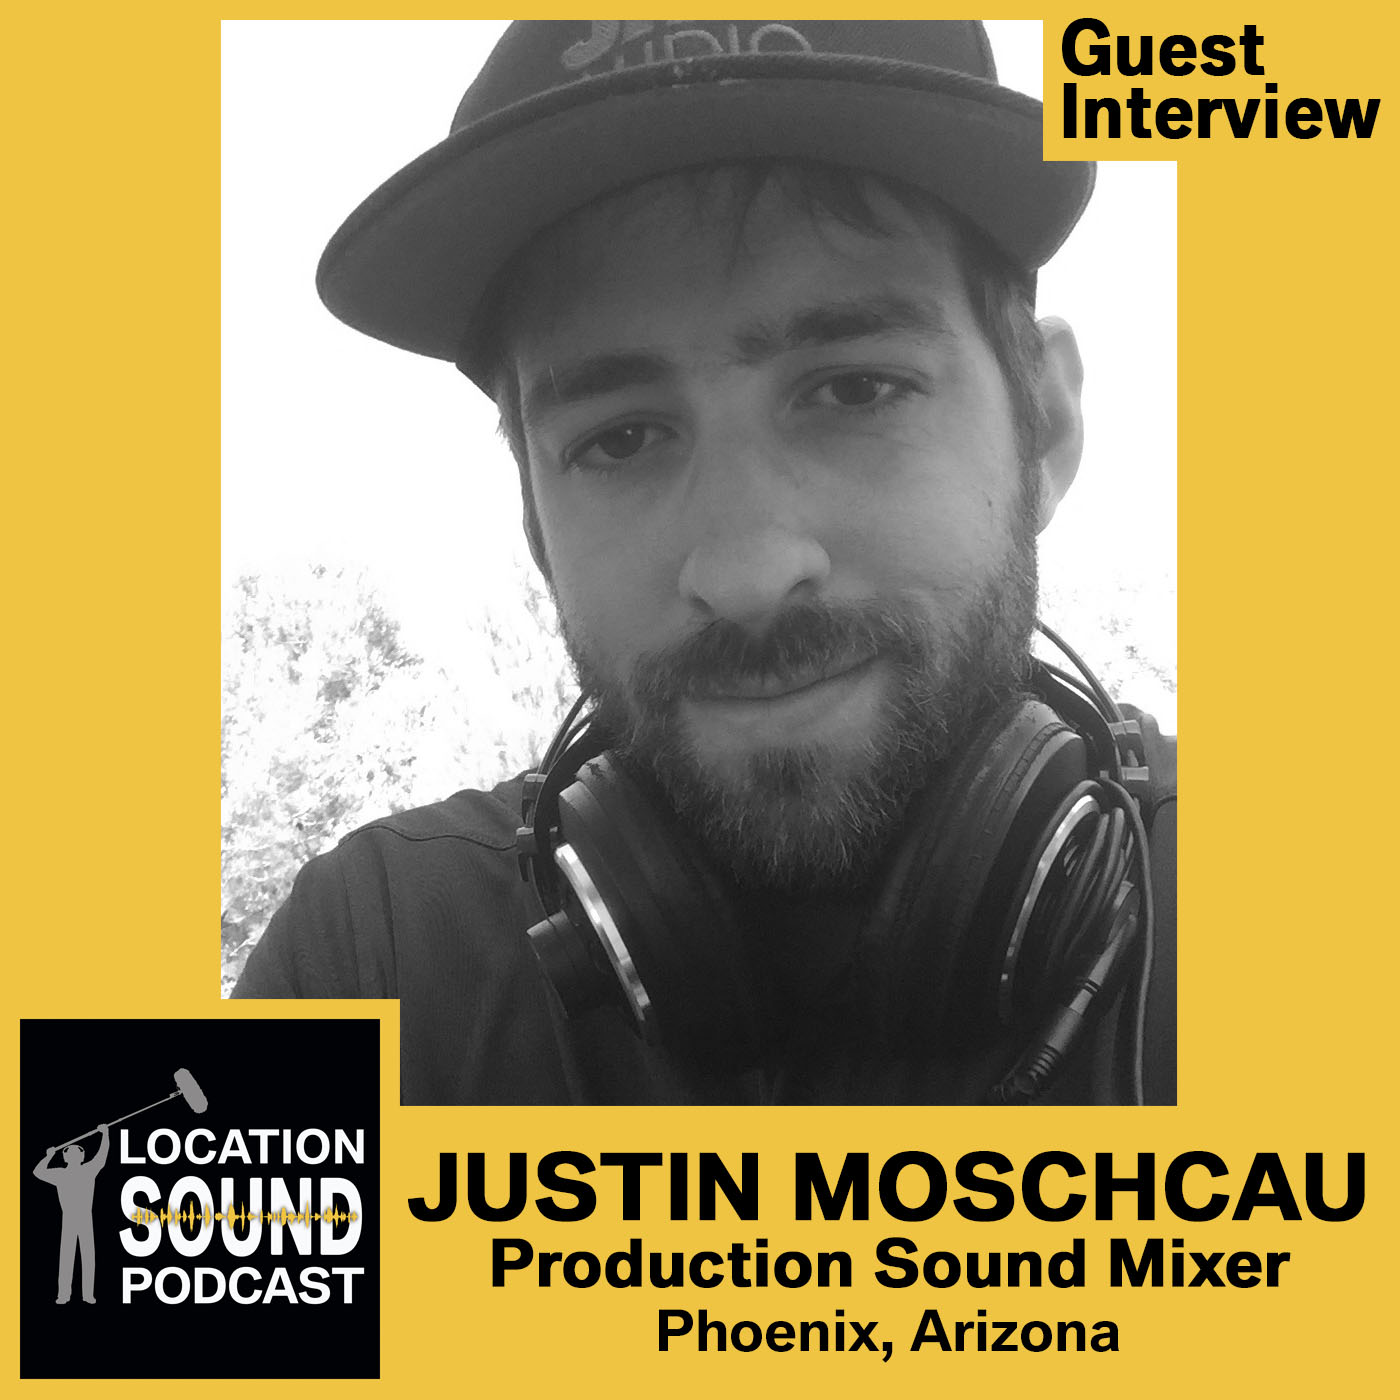 O66 Justin Moschcau - Production Sound Mixer based out of the Phoenix, Arizona area